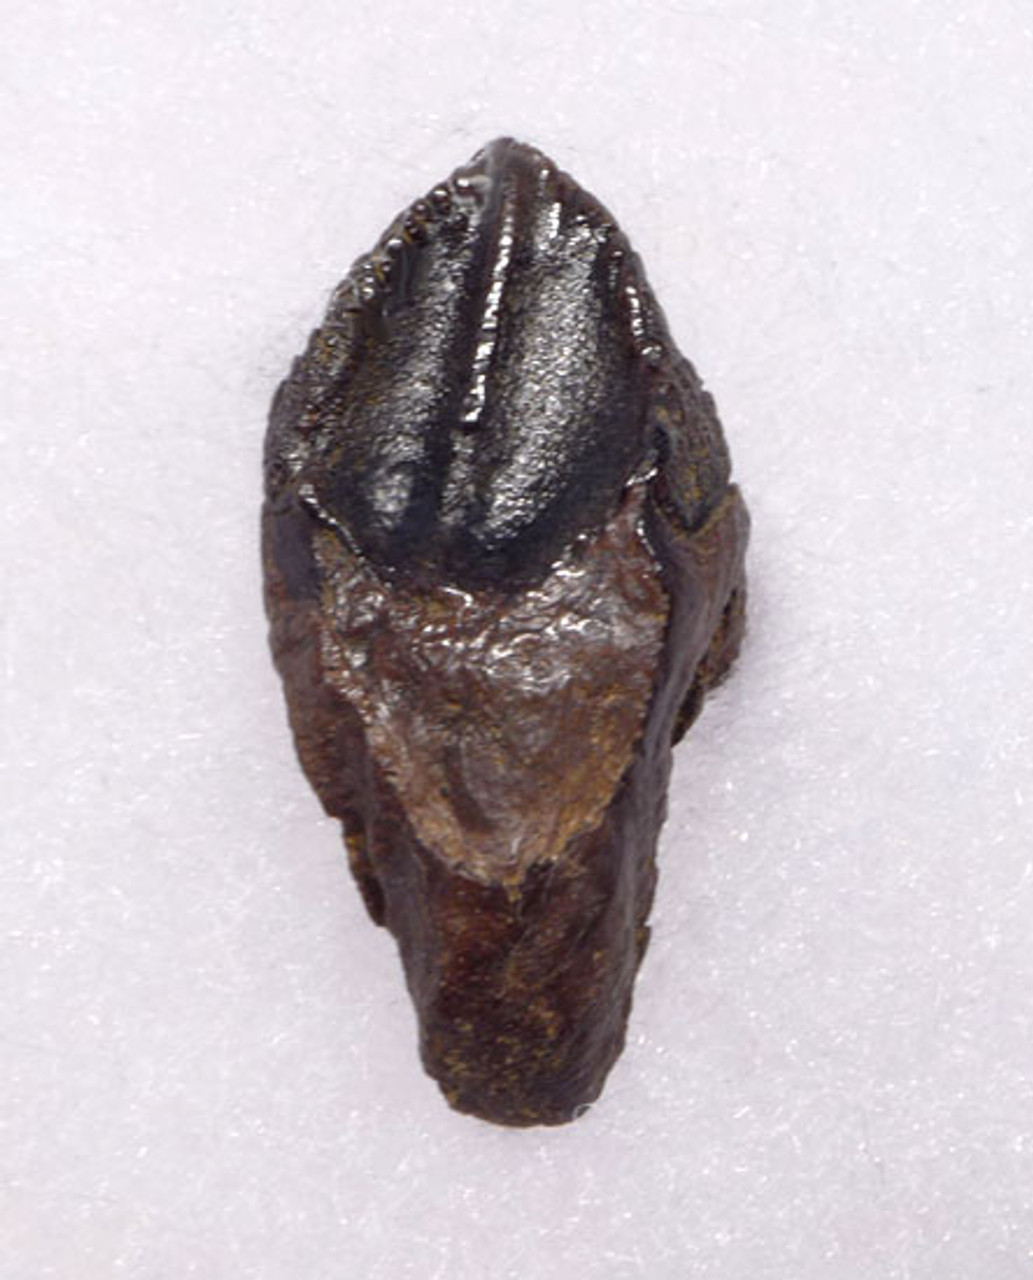 DT19-043 - PERFECT AND COMPLETE  SUB-ADULT TRICERATOPS TOOTH WITH UNWORN FULL CROWN AND ROOT